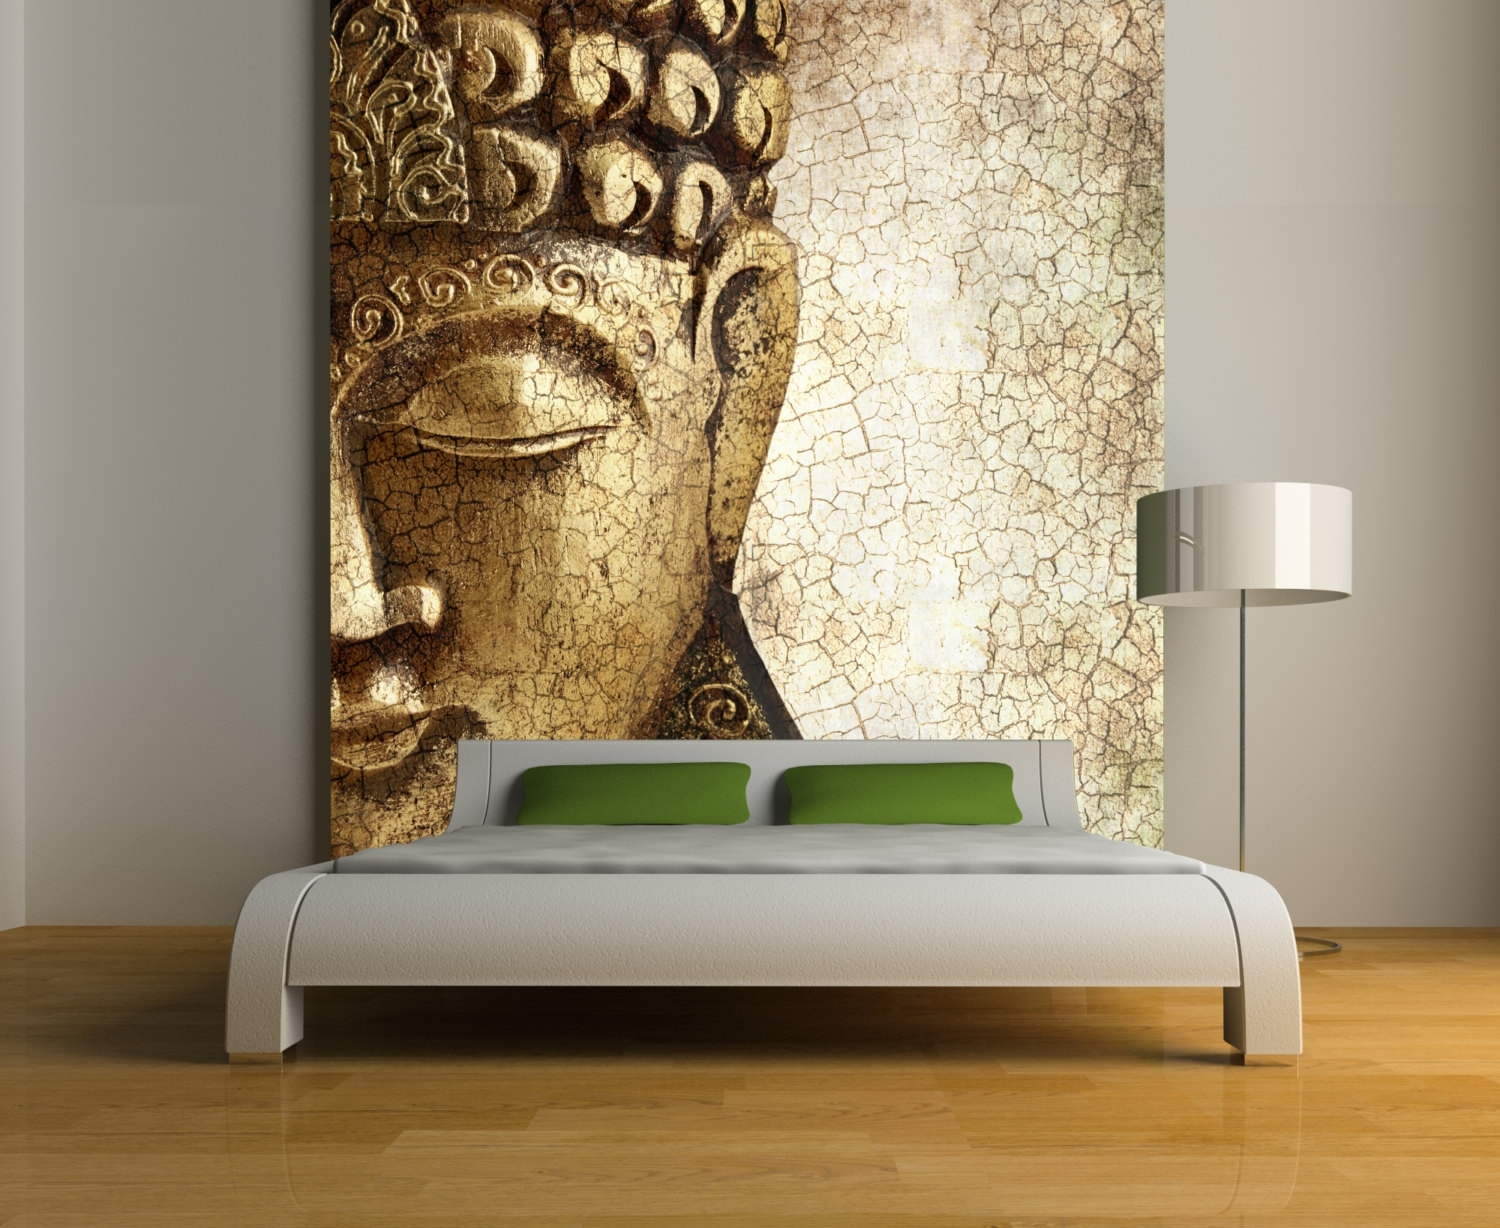 Buddha Wall Mural Repositionable Peel And Stick Wallstyleawall In Most Current Murals Wall Accents (View 8 of 15)